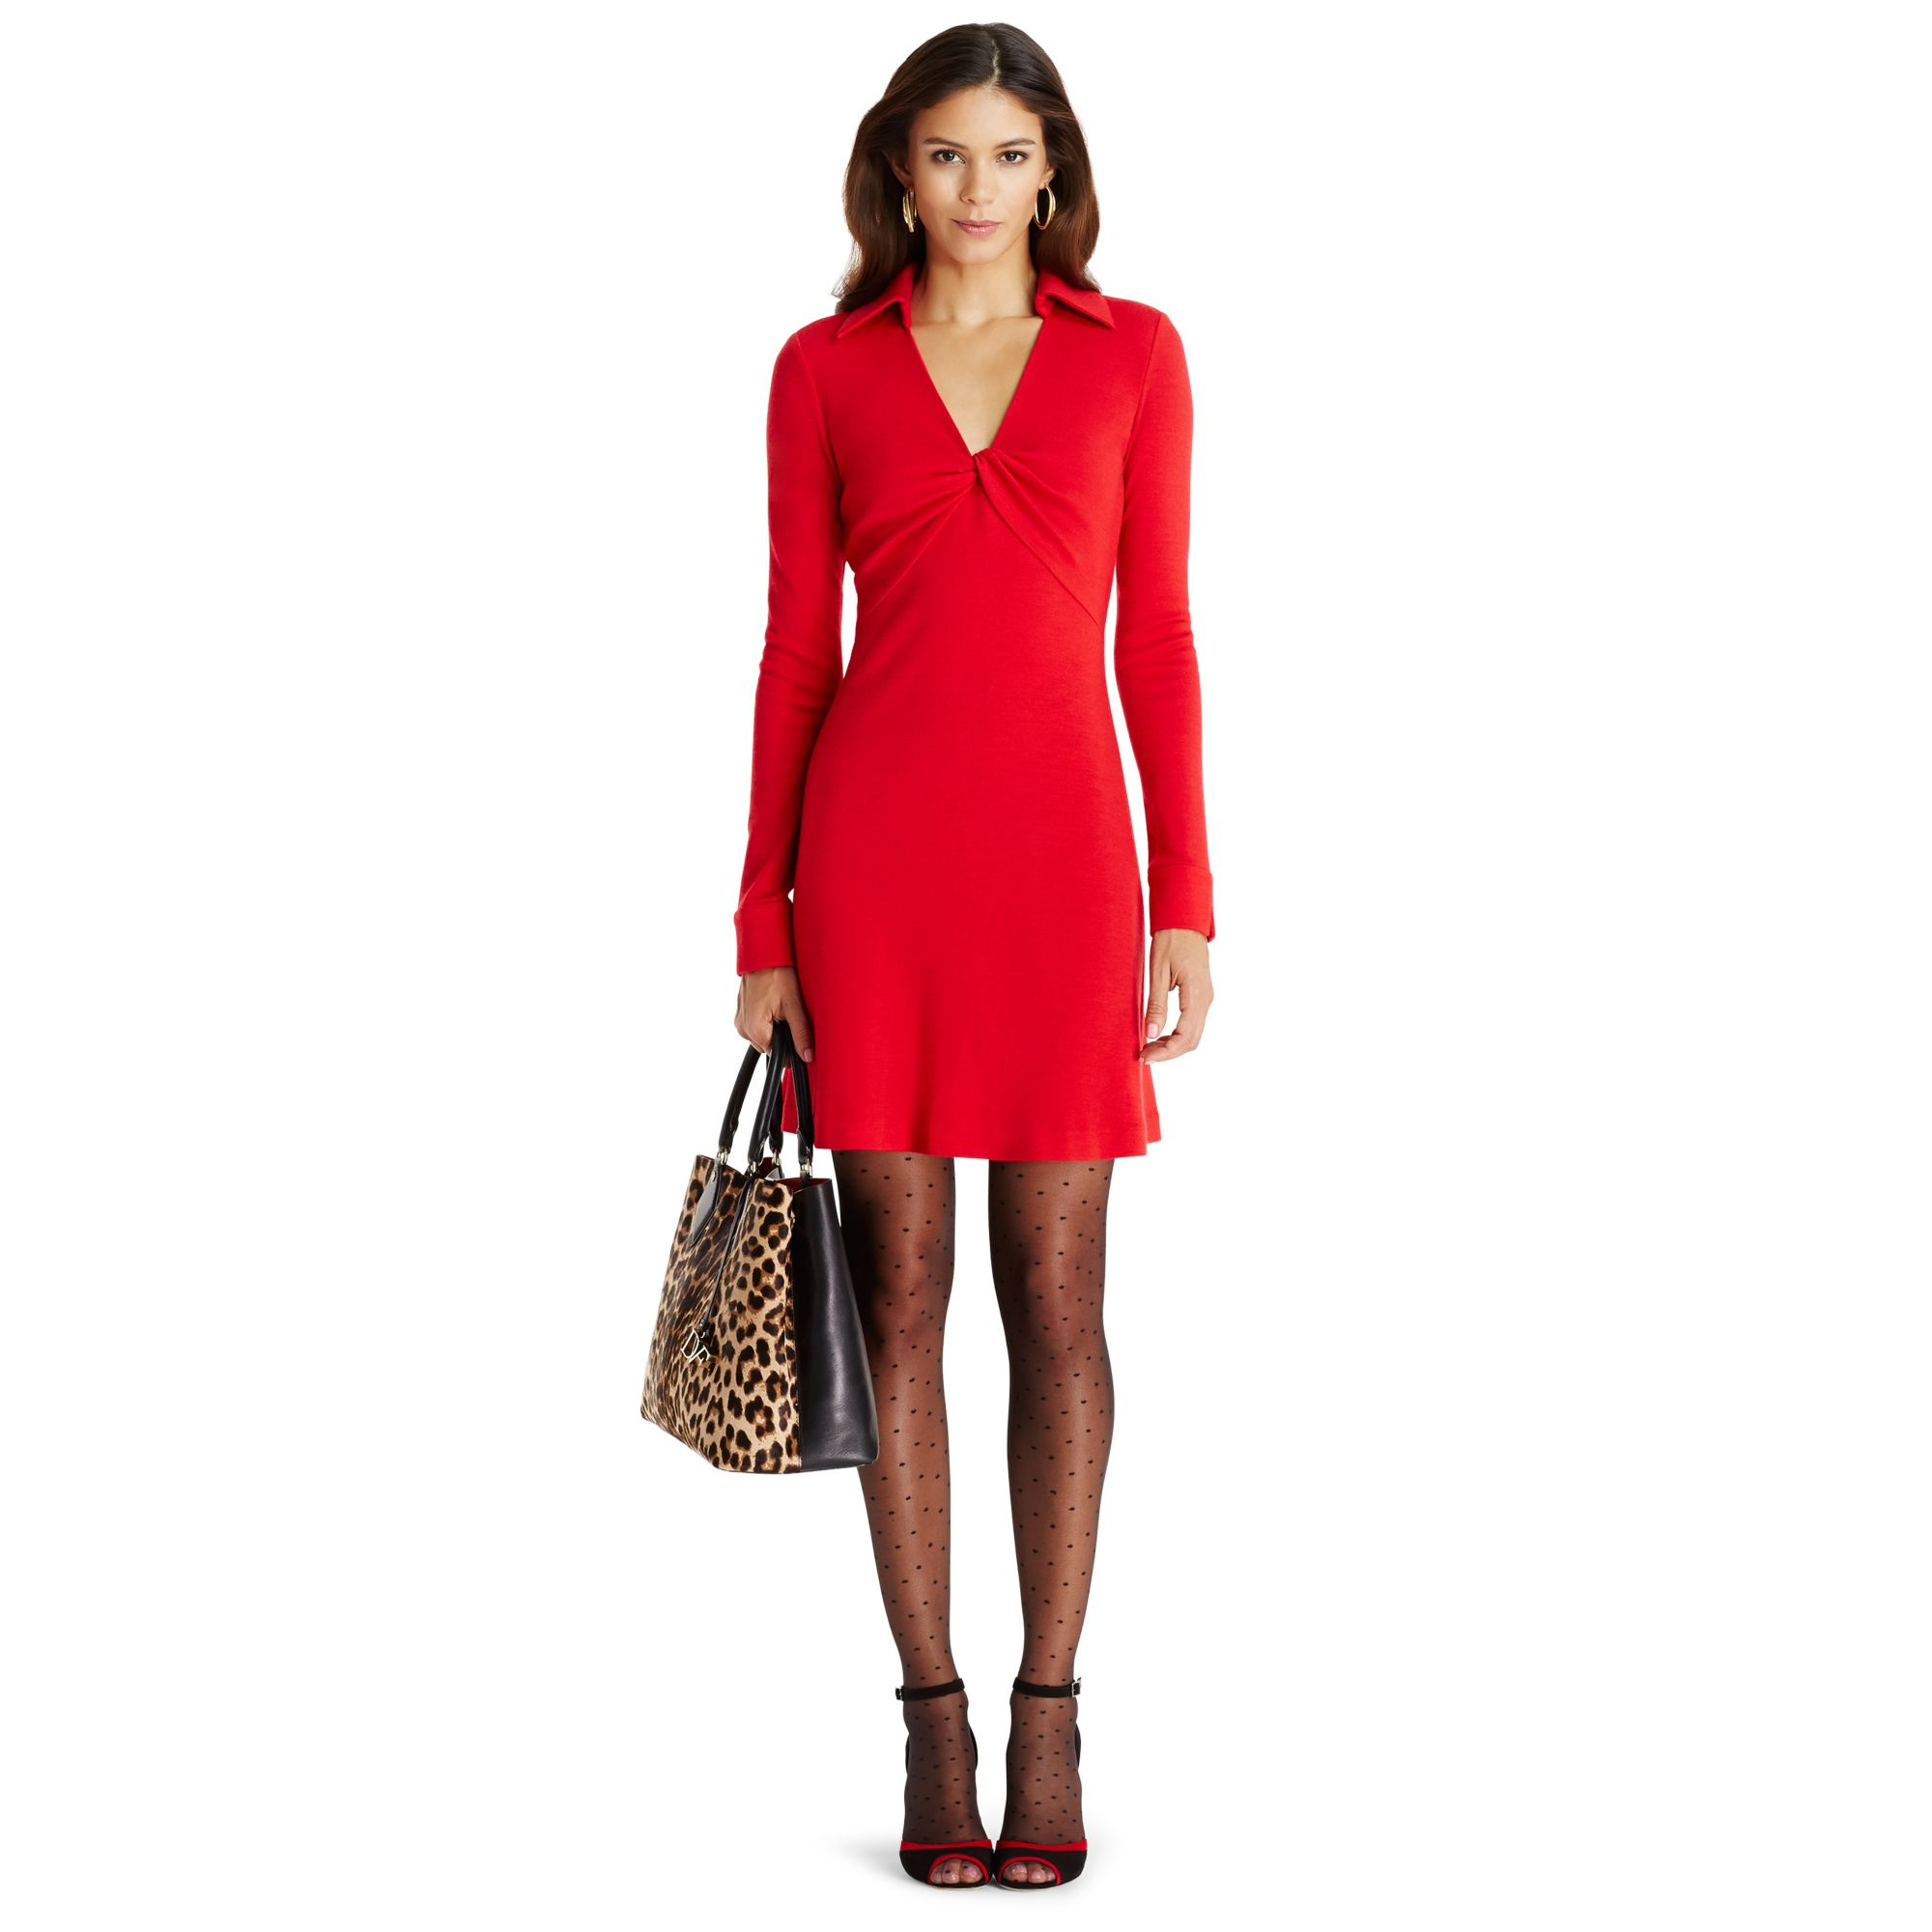 Diane von furstenberg Dvf Twist Wool Shirtdress in Red | Lyst